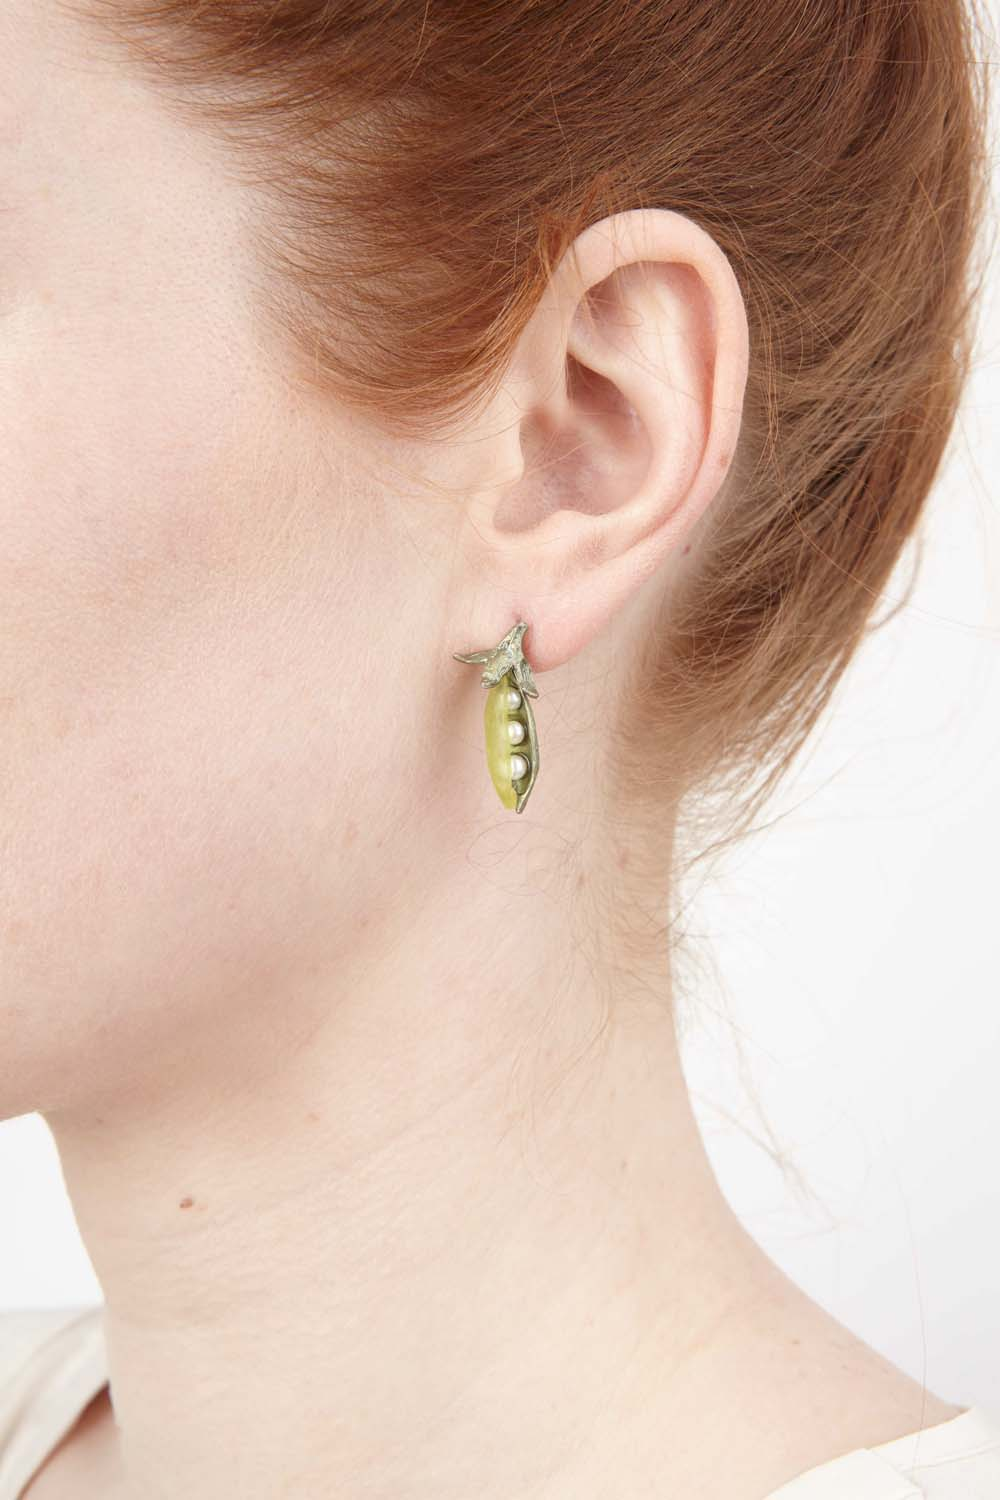 Sweet Pea Earrings - Petite Post